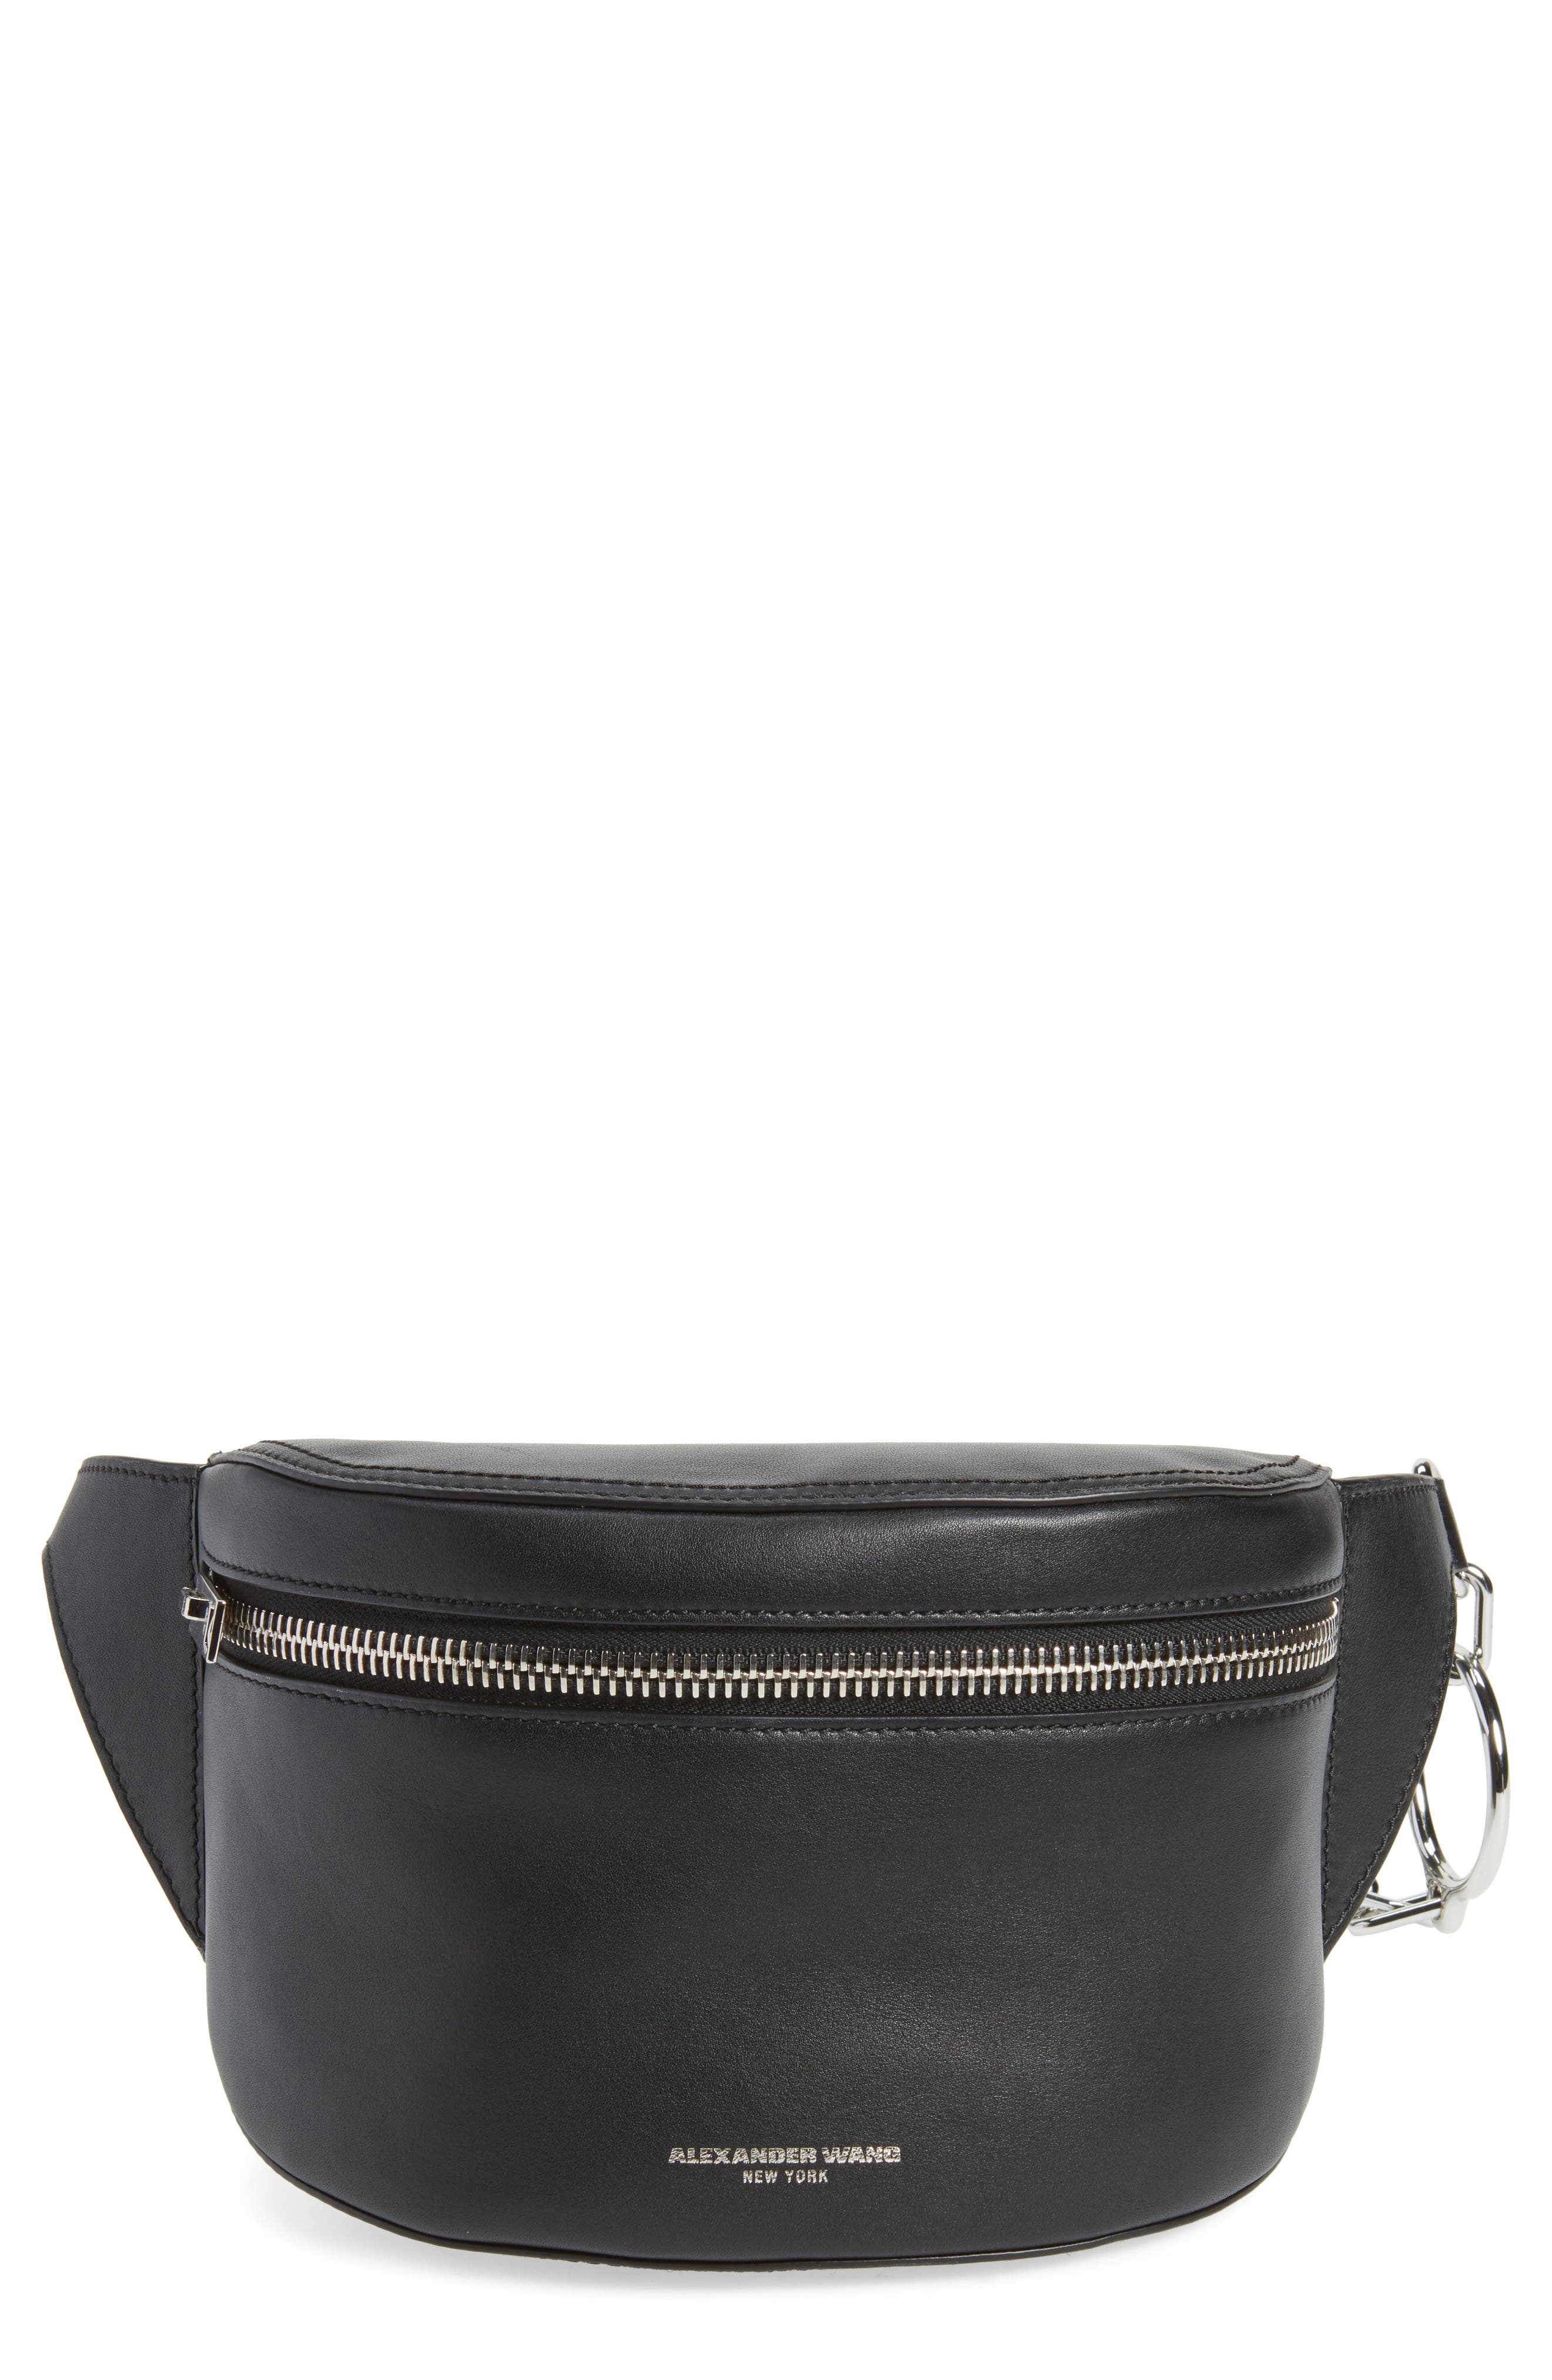 Leather Fanny Pack,                             Main thumbnail 1, color,                             Black